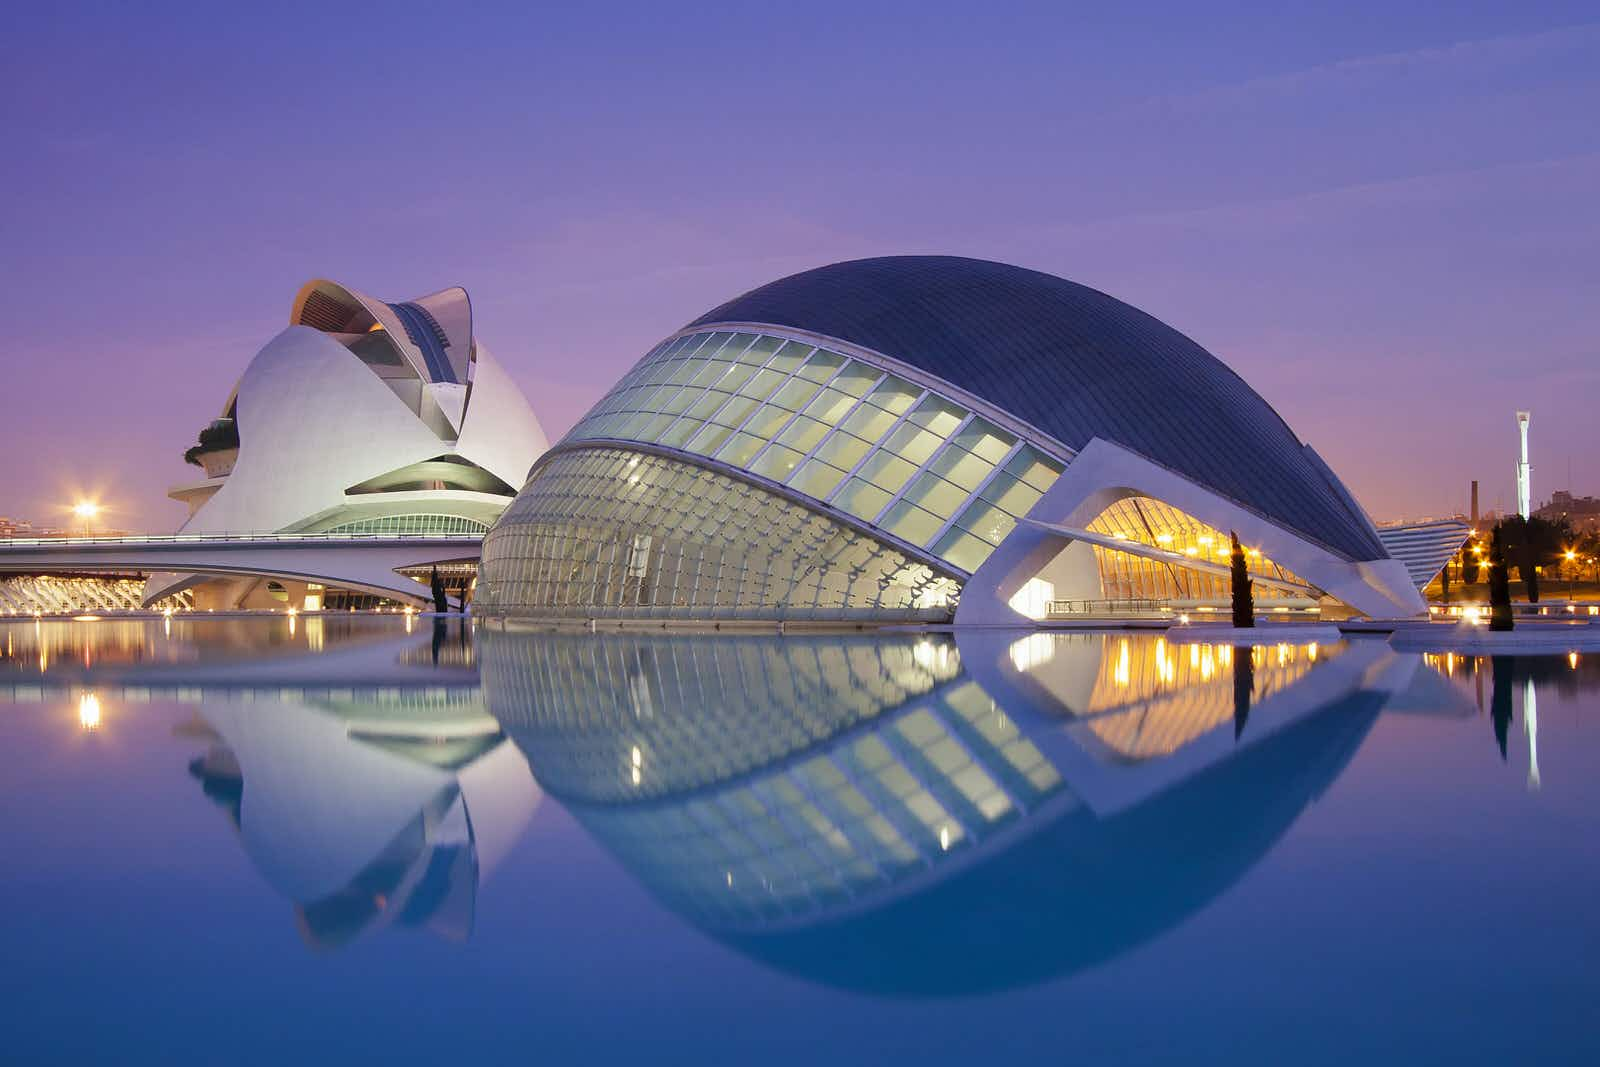 Valencia and Alicante: beaches, barrios and otherworldly buildings